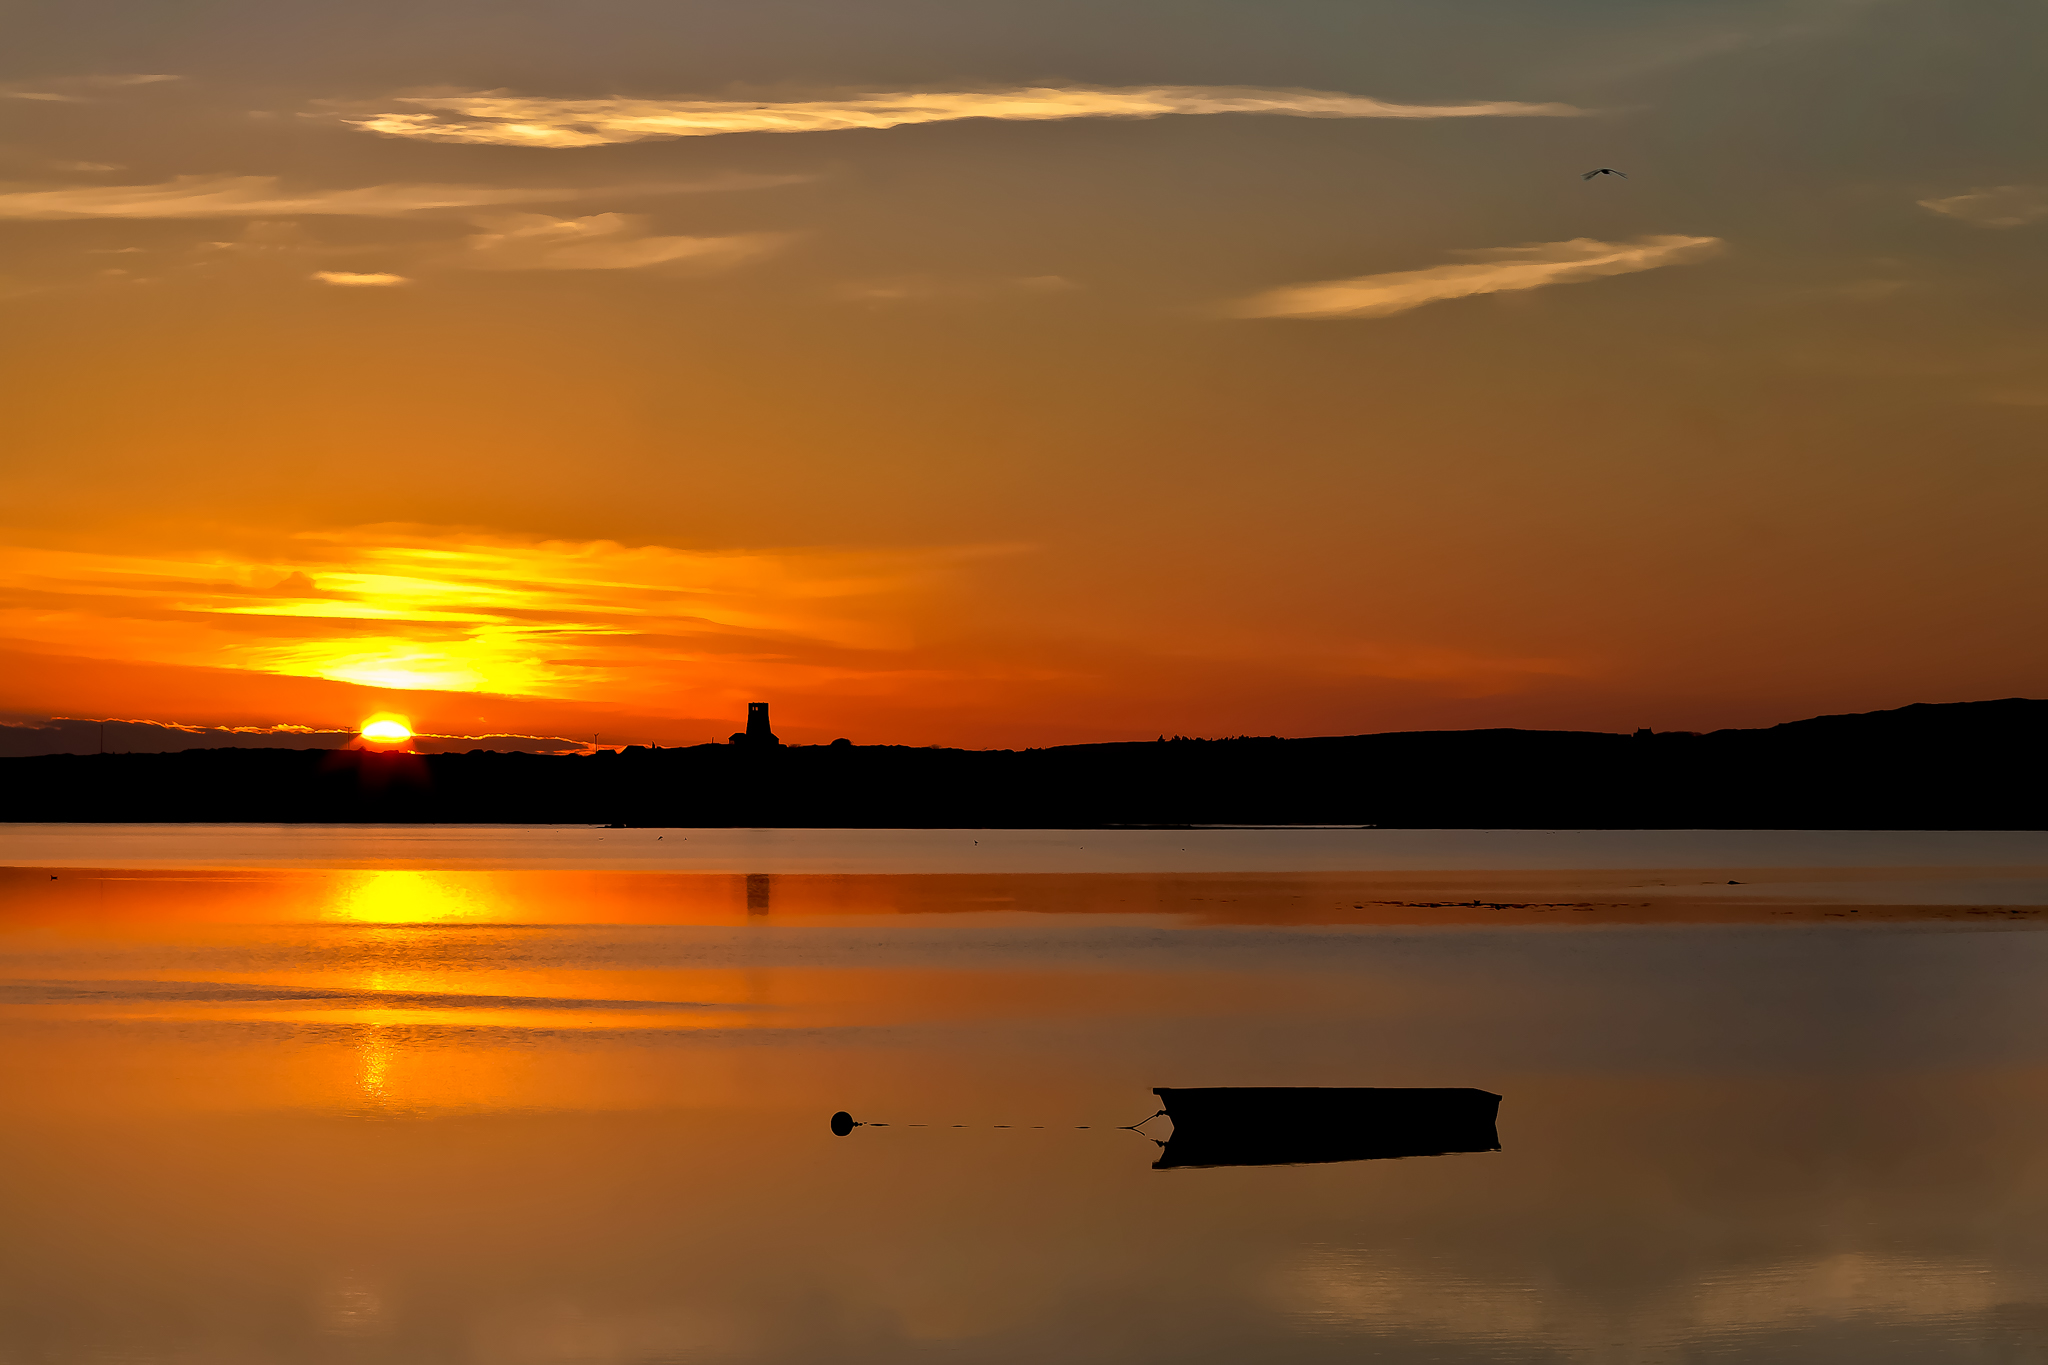 The sun goes down over a moored rowing boat at Holyhead, Isle of Anglesey, north Wales.